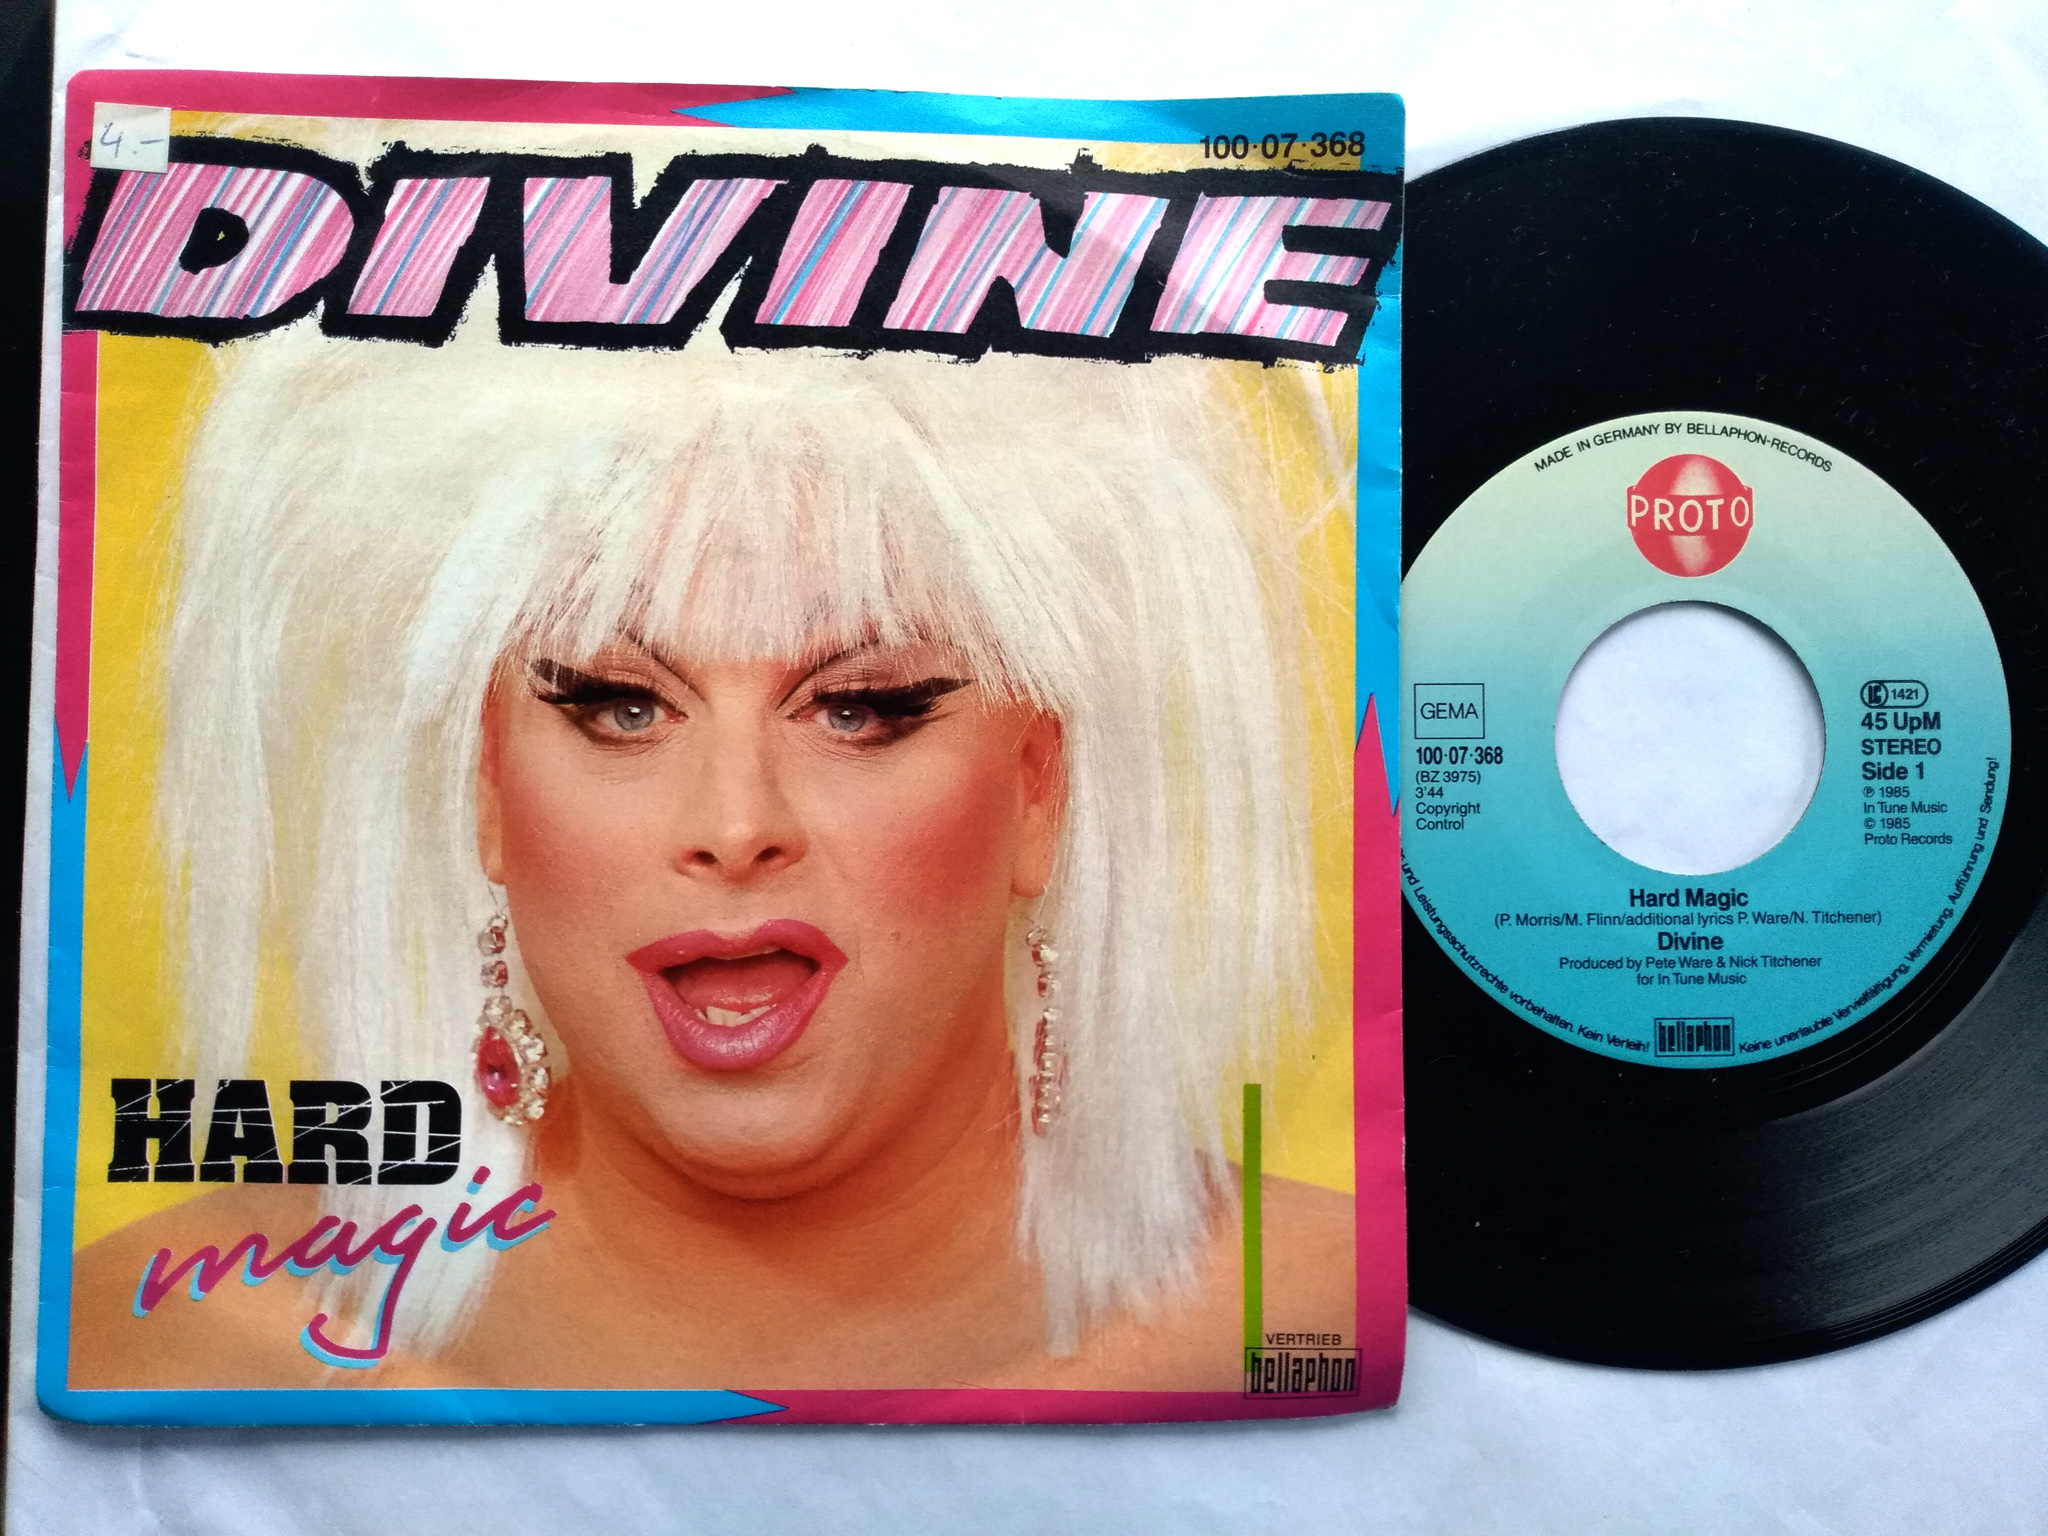 Divine - Hard Magic 7'